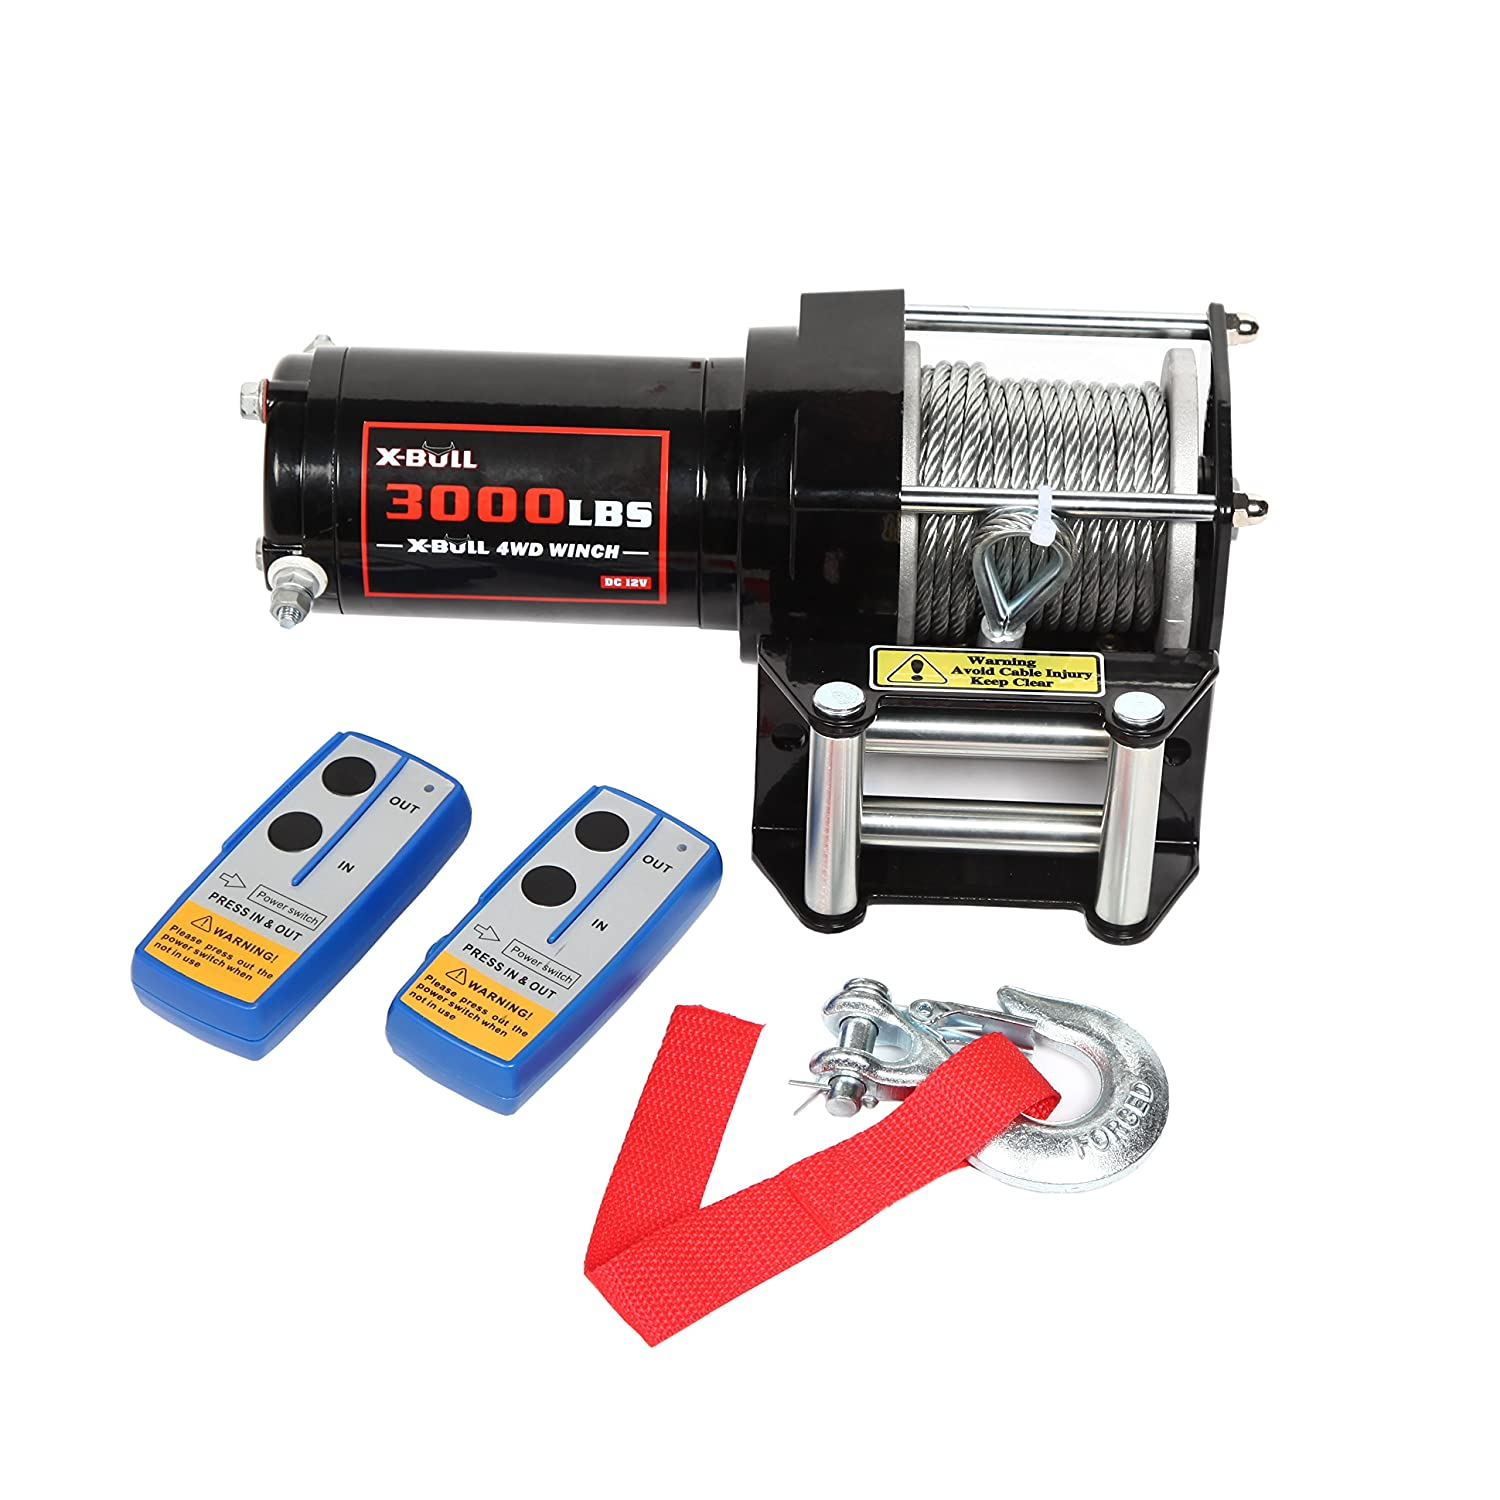 Electric Winches Power Industrial Scientific Mdc300120151 Brushless Speed Controllers 1hp And Over X Bull 12v 3000lbs 1360kg Atv Winch 2 Remote Wireles Control Steel Cable